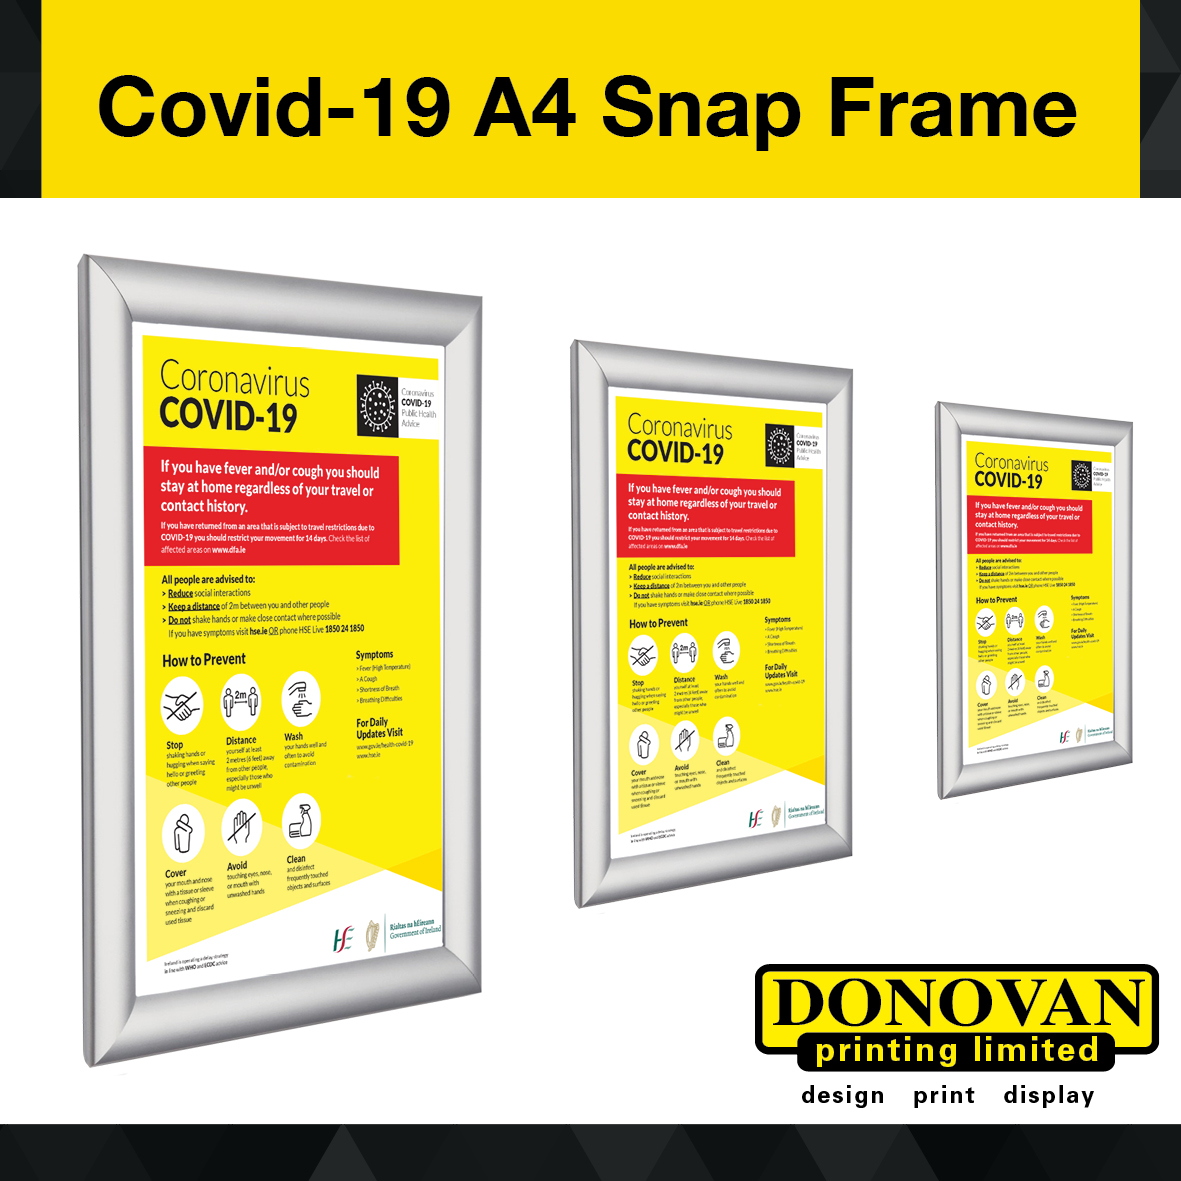 Covid A4 Snap frame & Pposter Image